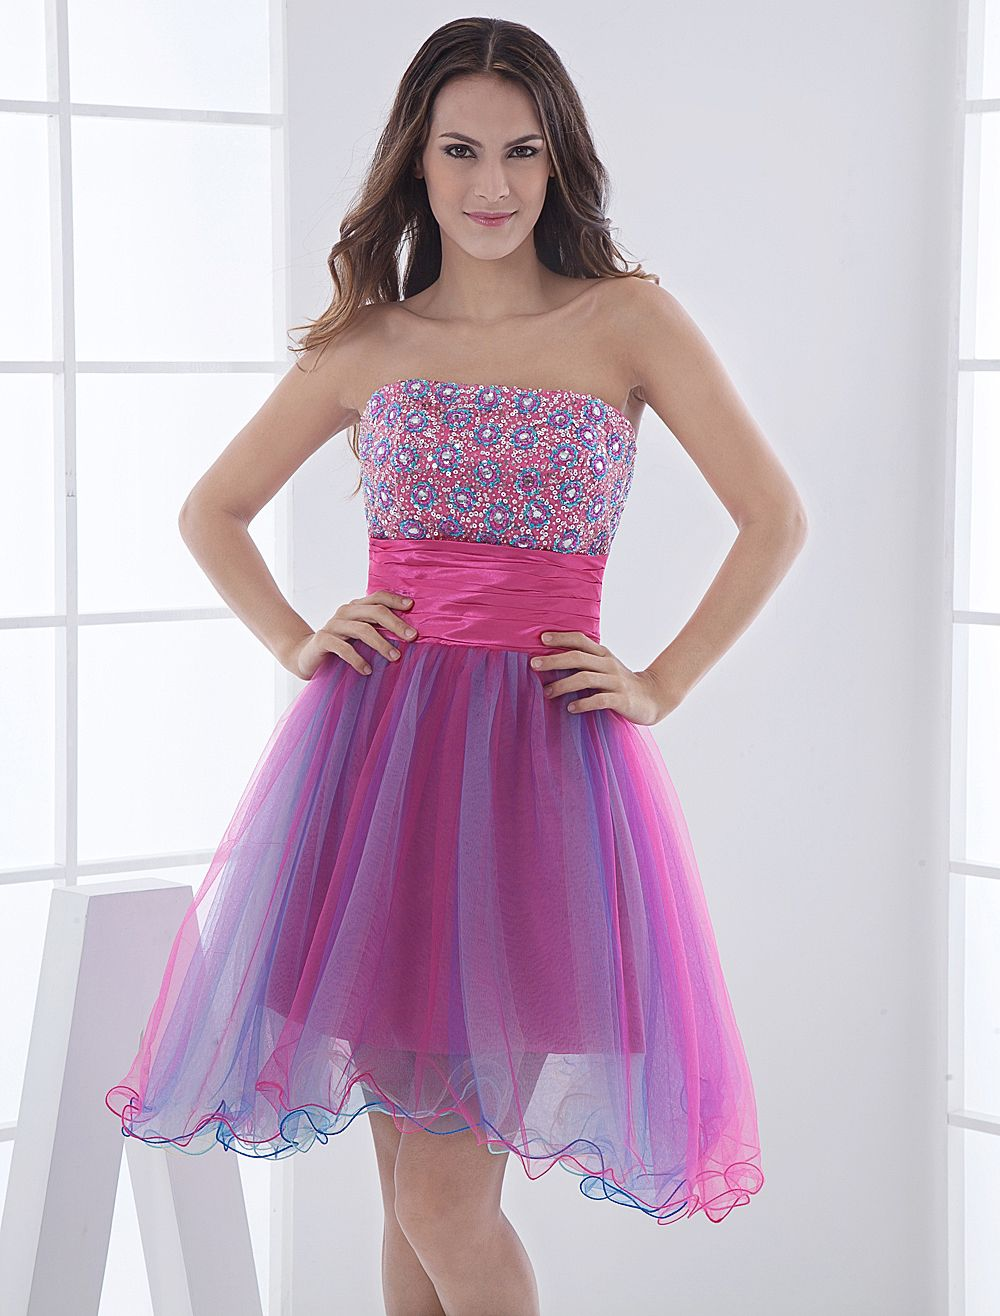 strapless-dresses-for-teens-combined-with-pink-floral-motif-accent ...